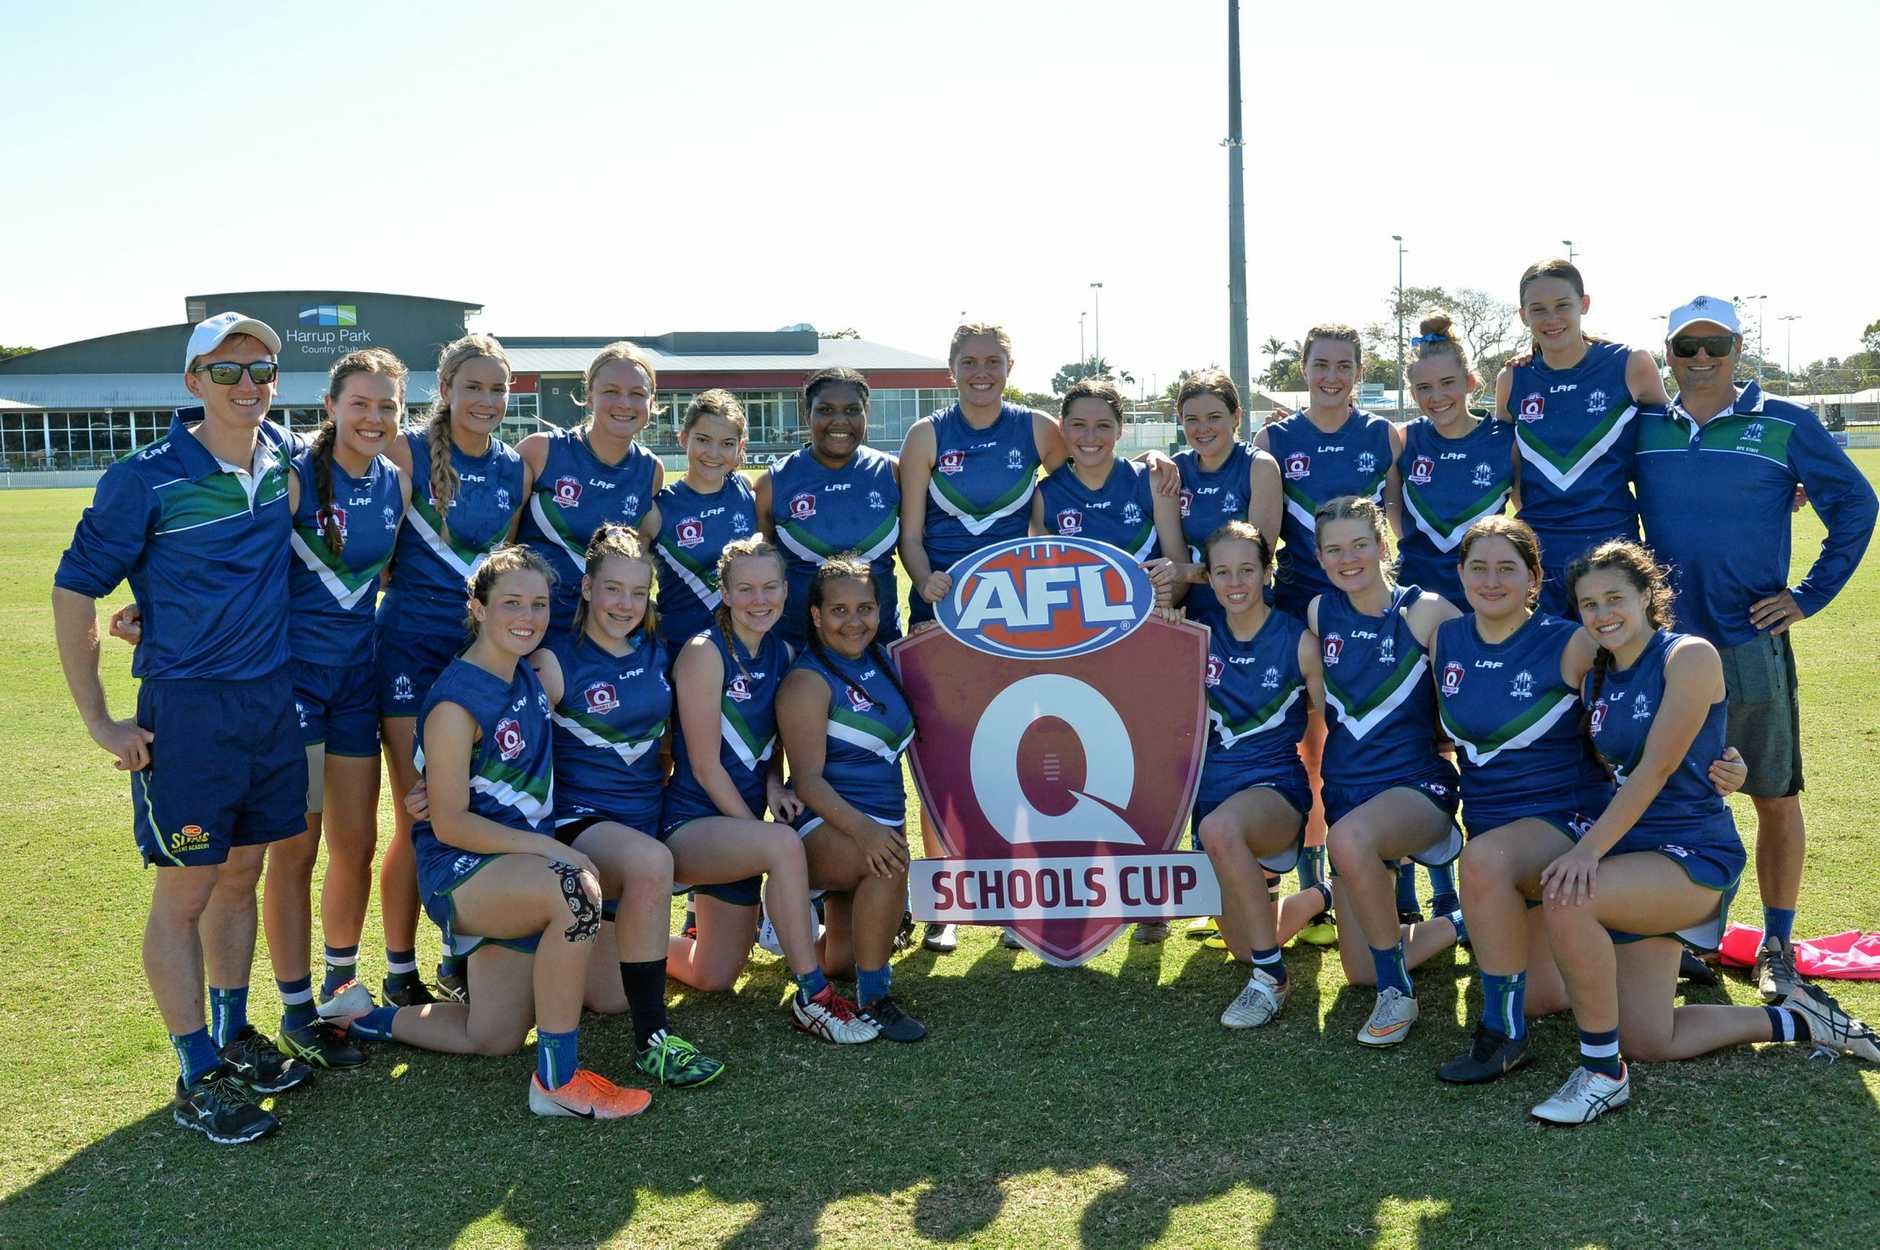 The Cathedral College's victorious senior girls AFL team (back row, from left) coach Michael Rose, Holly Clarke, Rahni Parle, Sara-Jane O'Grady, Melanie Hamilton, Akausher Savage, Liezel Viljoen, Ashleigh Toomey, Remmie Whitehead, Anna Childes, Georgia Abbott, Isabelle Shearer, and assistant coach Andrew Prince, and (front row) Lili-Jayne Hass, Cordell O'Meara, Lucy Busby, Shontay Hockley, Ainslie Humble, Nicola Hill, Bianca Taylor and Jaya Acutt.